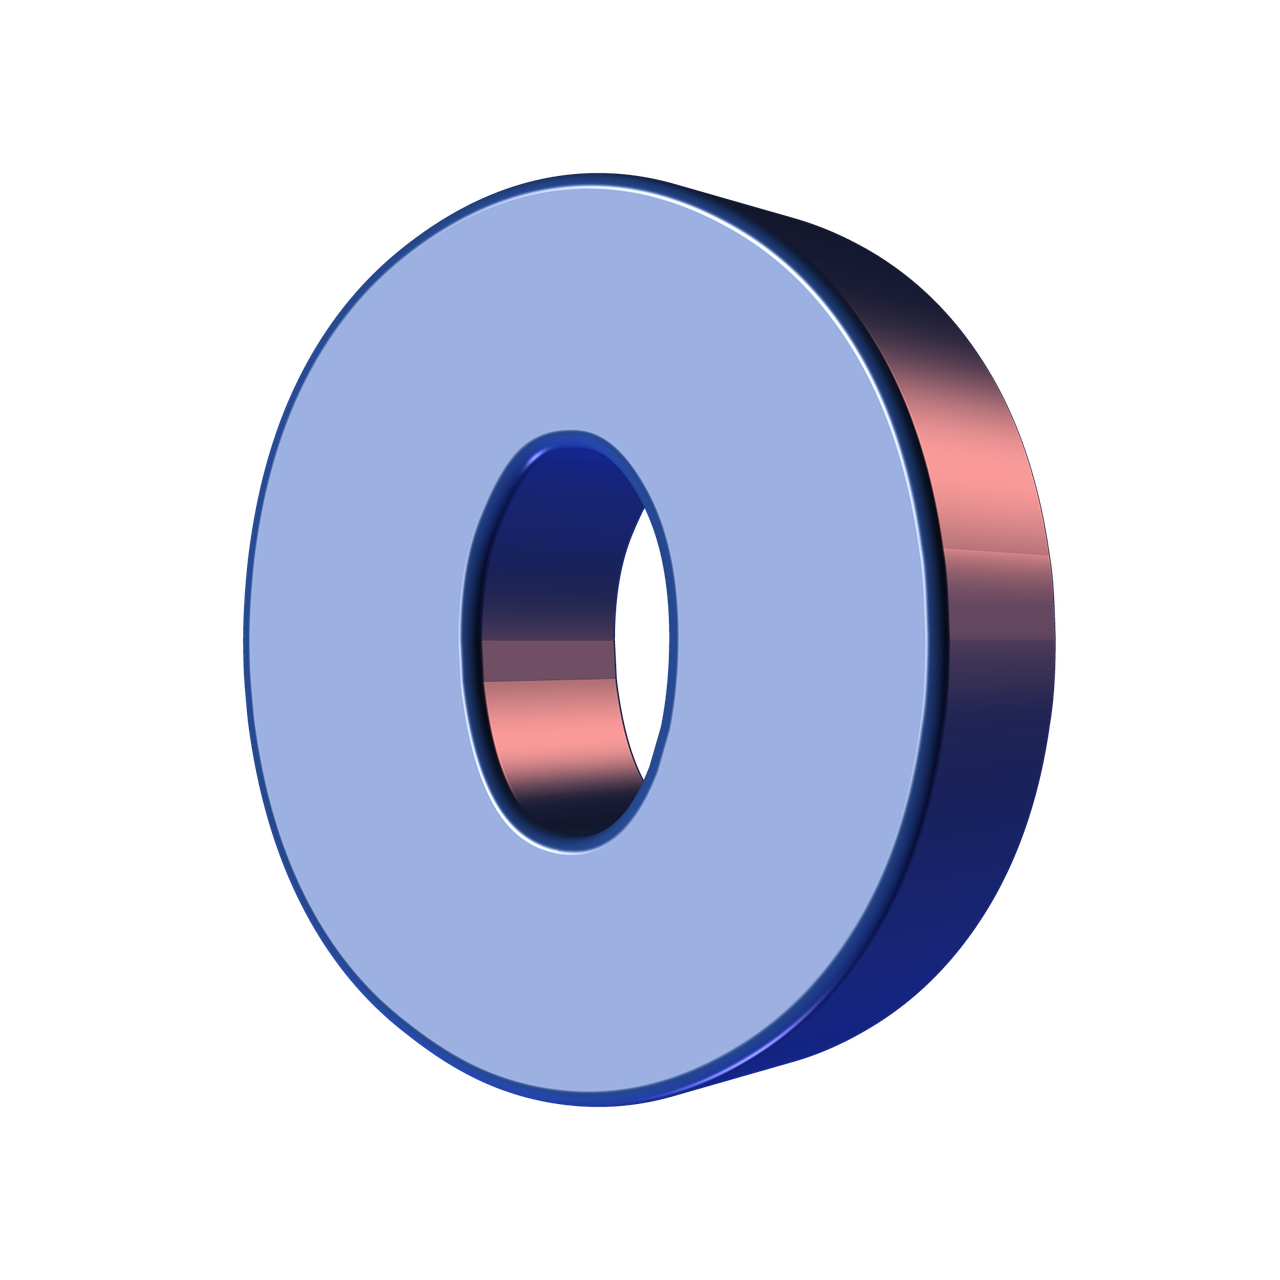 Number Zero 0 Digit Png Picpng